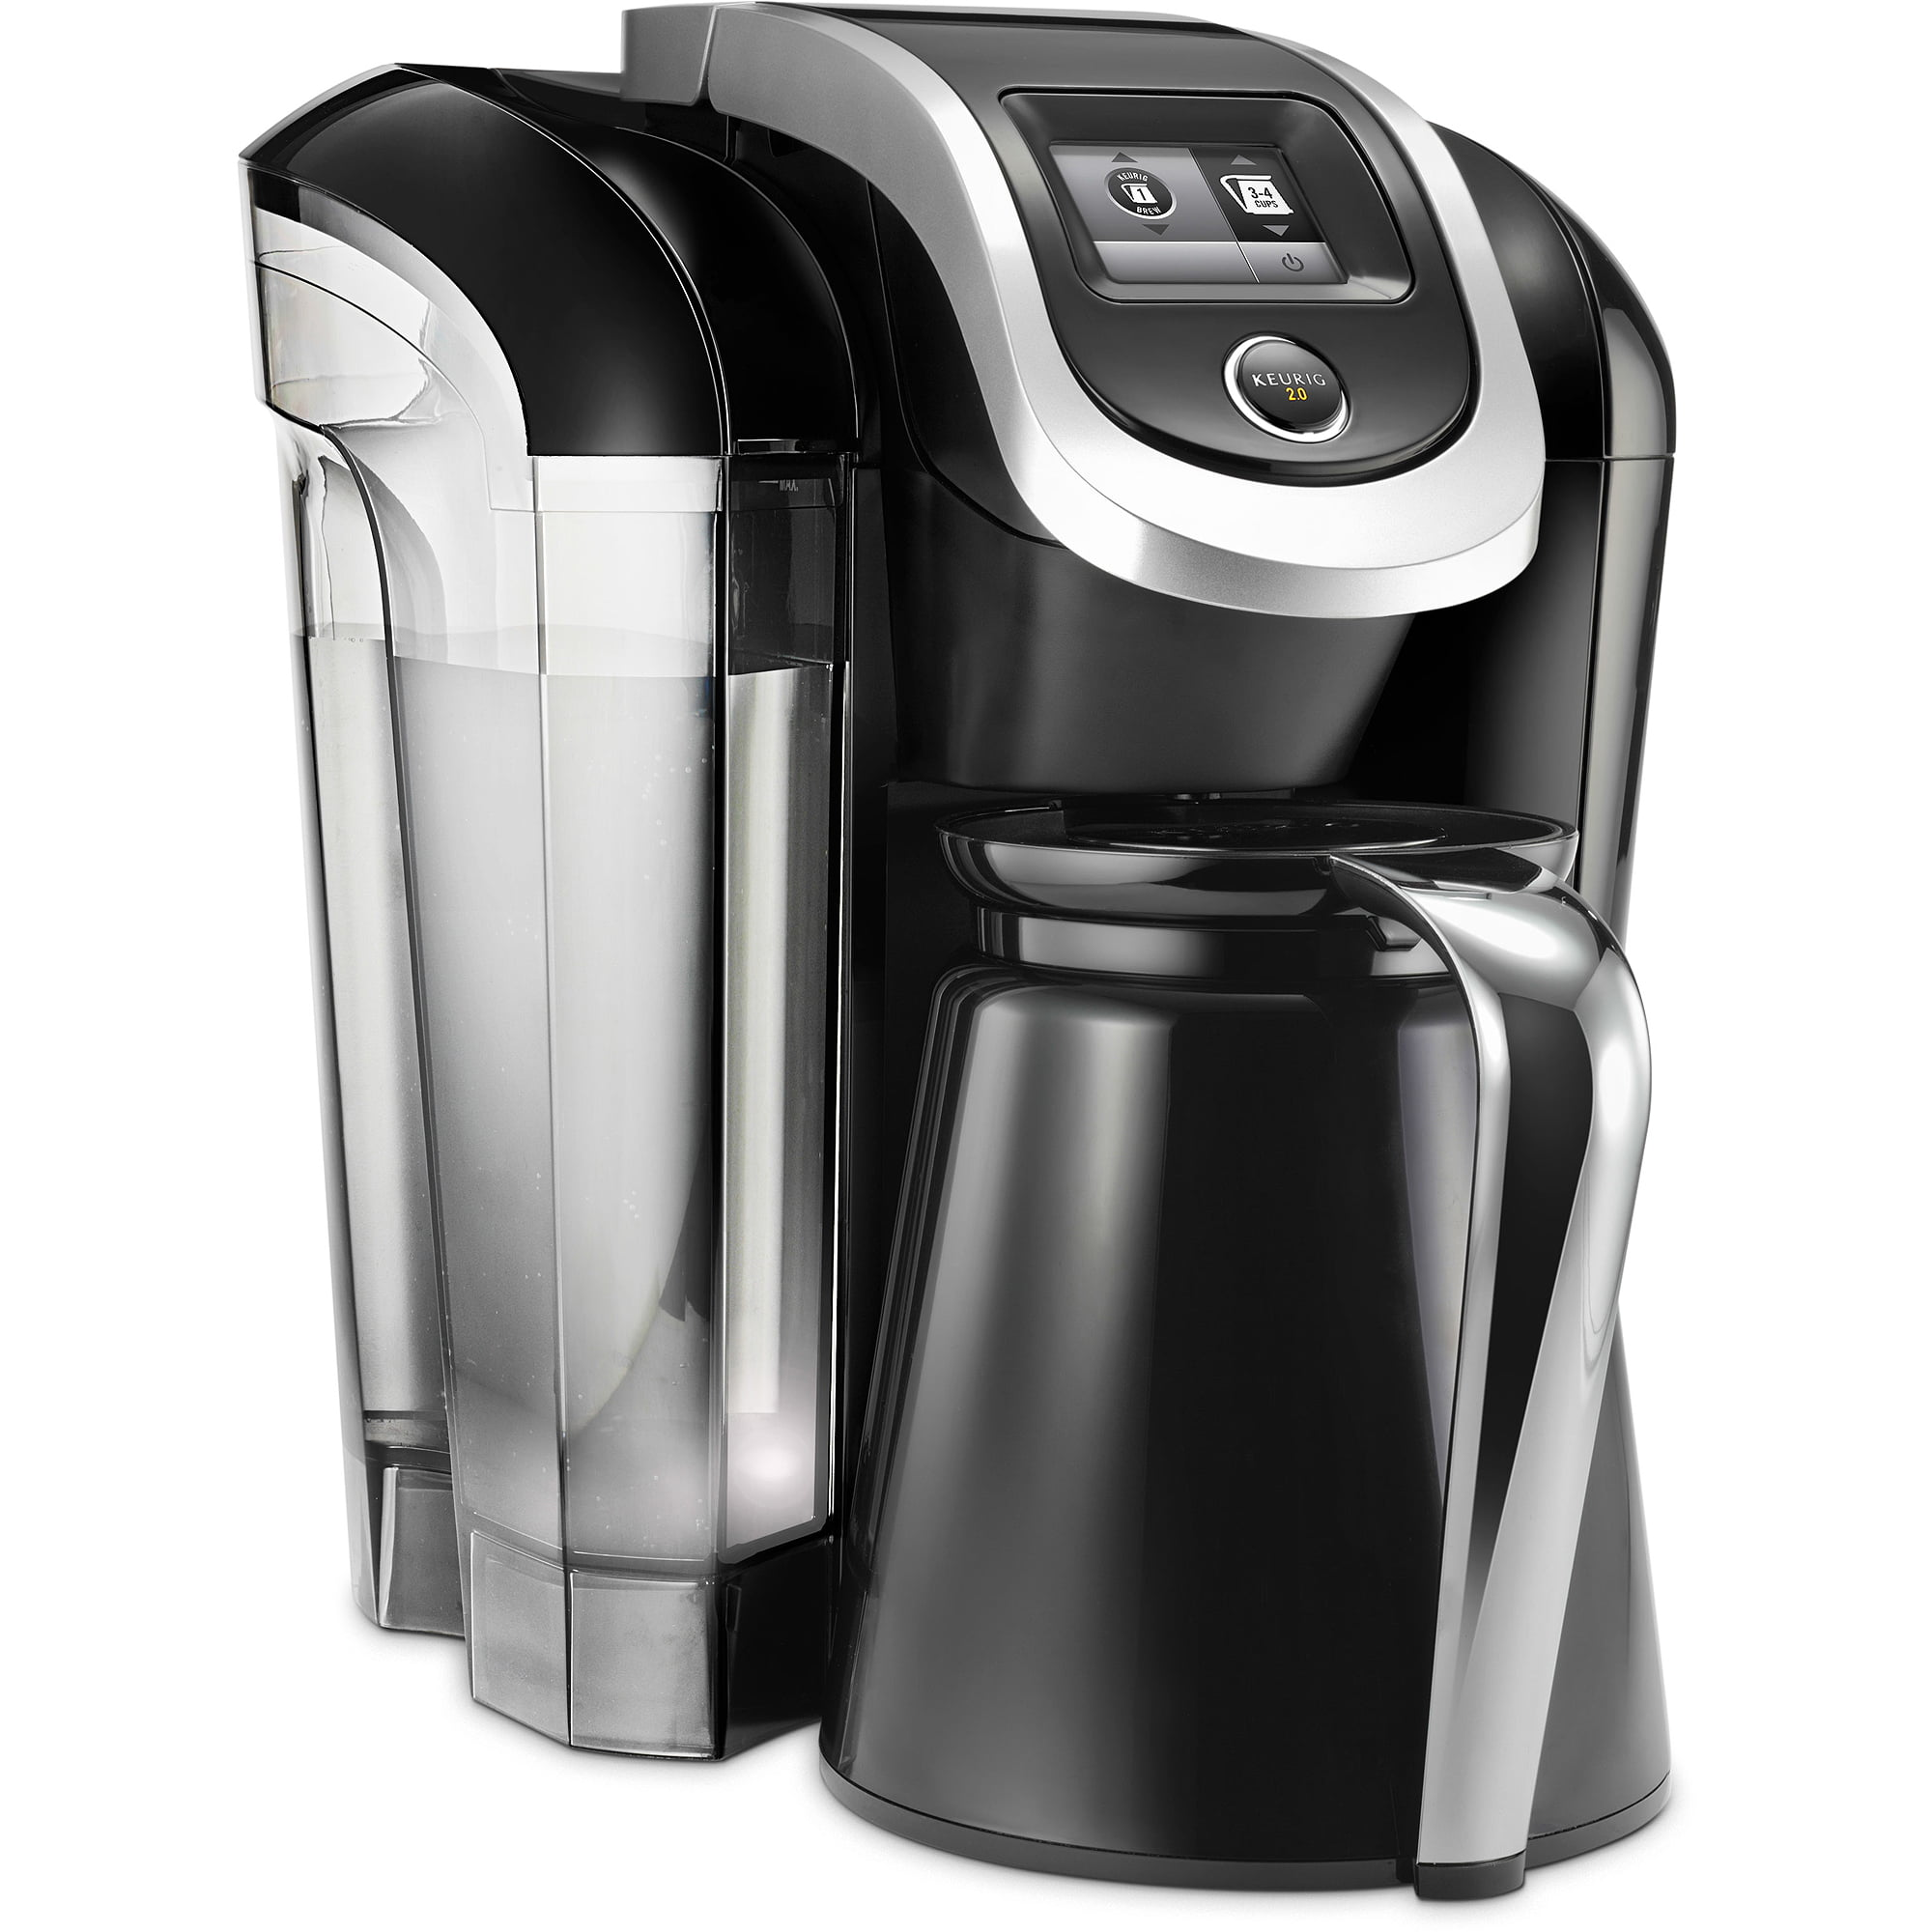 Keurig Coffee Maker Problems Prime : Keurig Not Making Full Cup productivity kpi examples